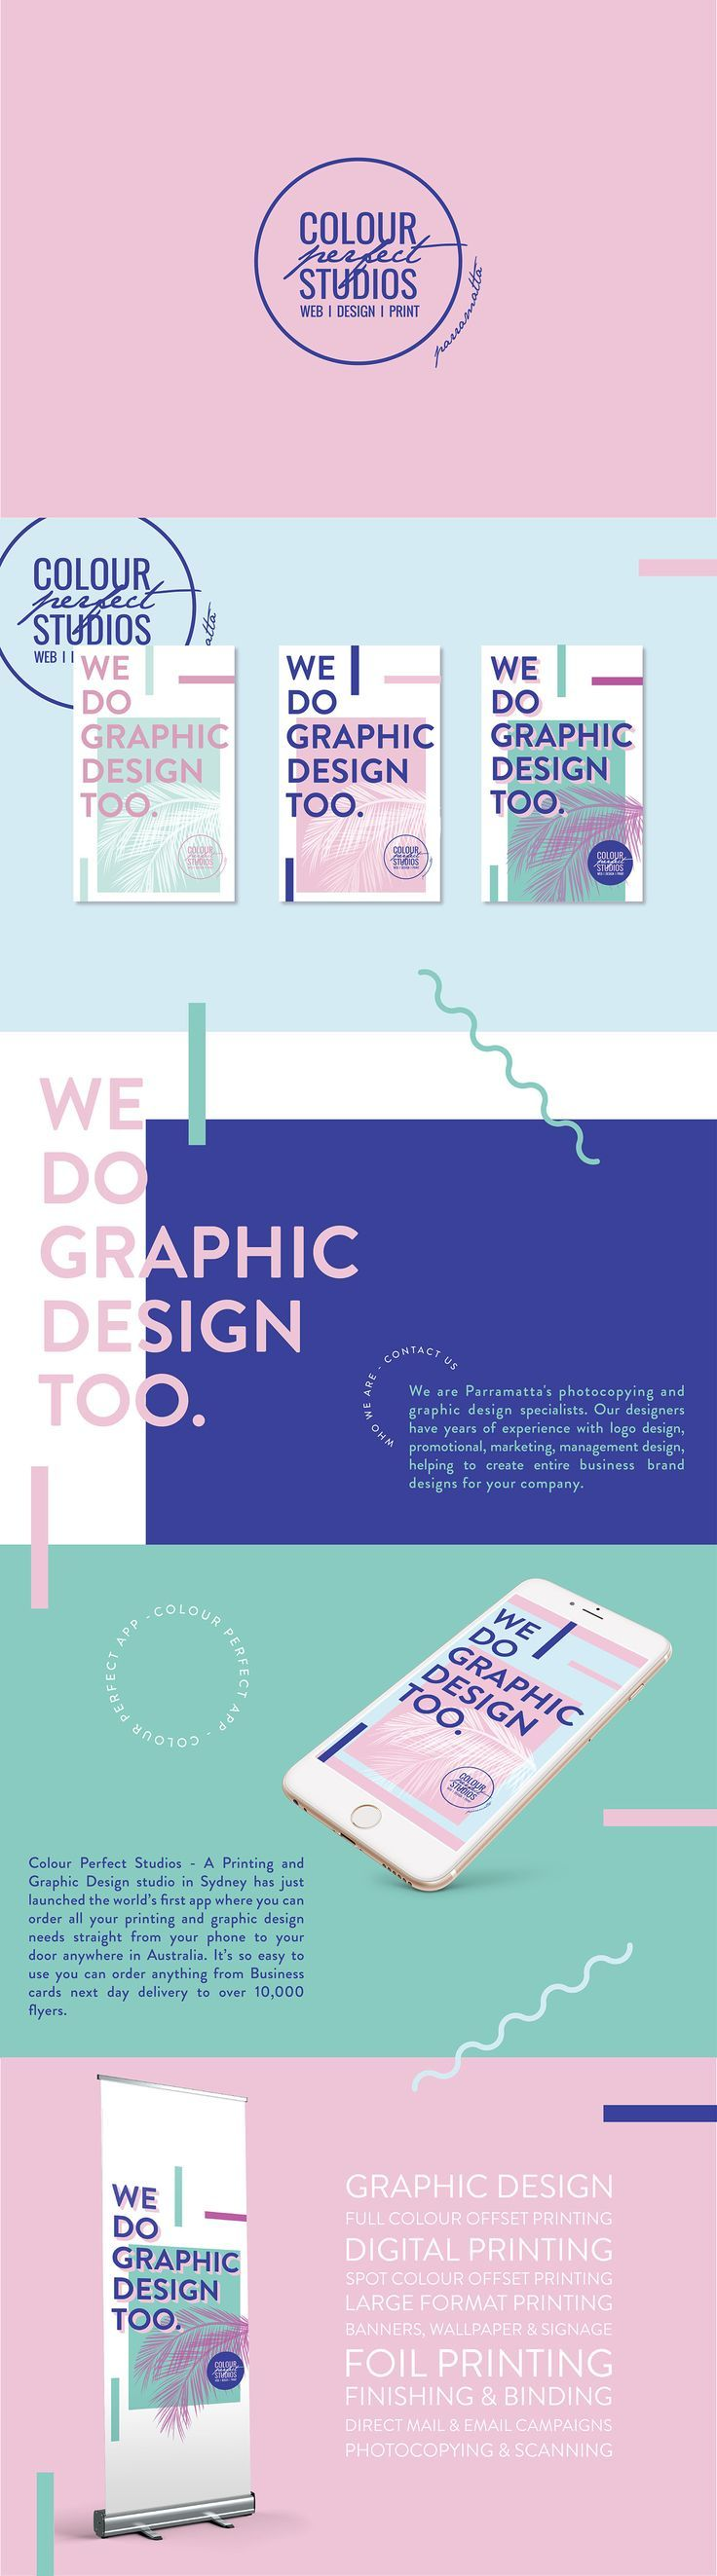 graphic design branding we do graphic design too on behance - Portfolio Design Ideas